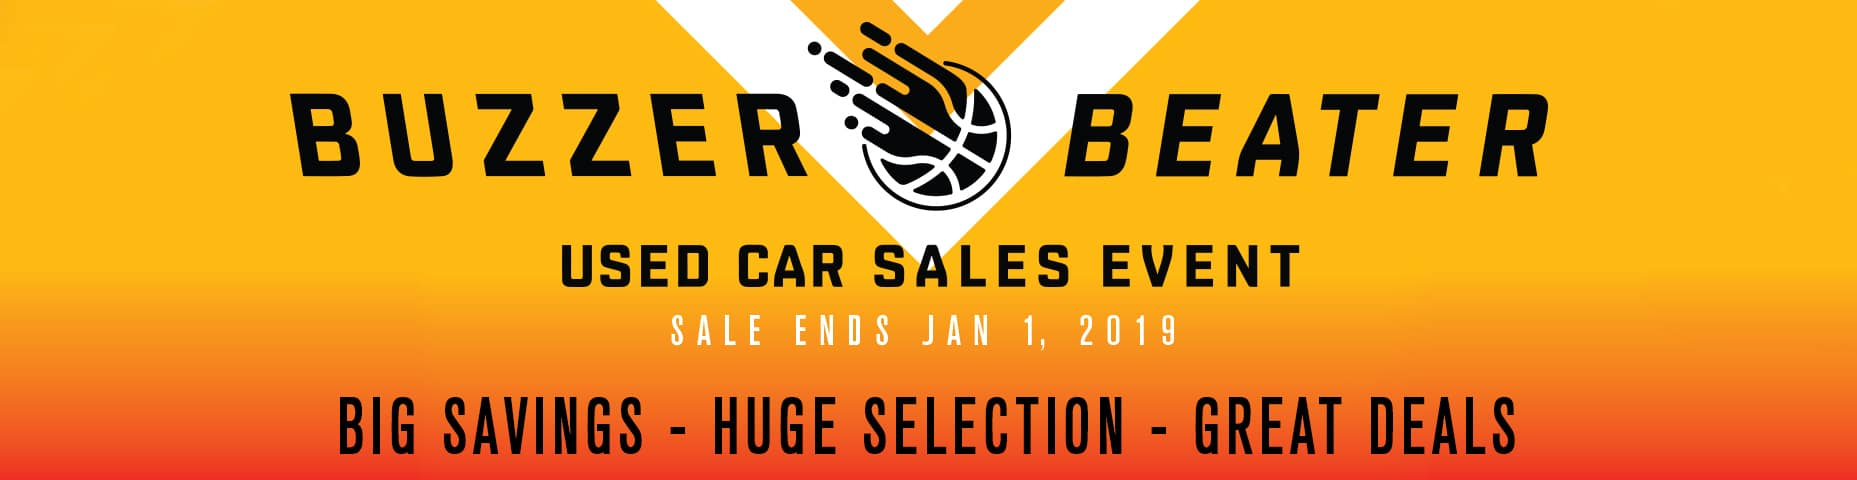 Buzzer Beater Used Car Sales Event